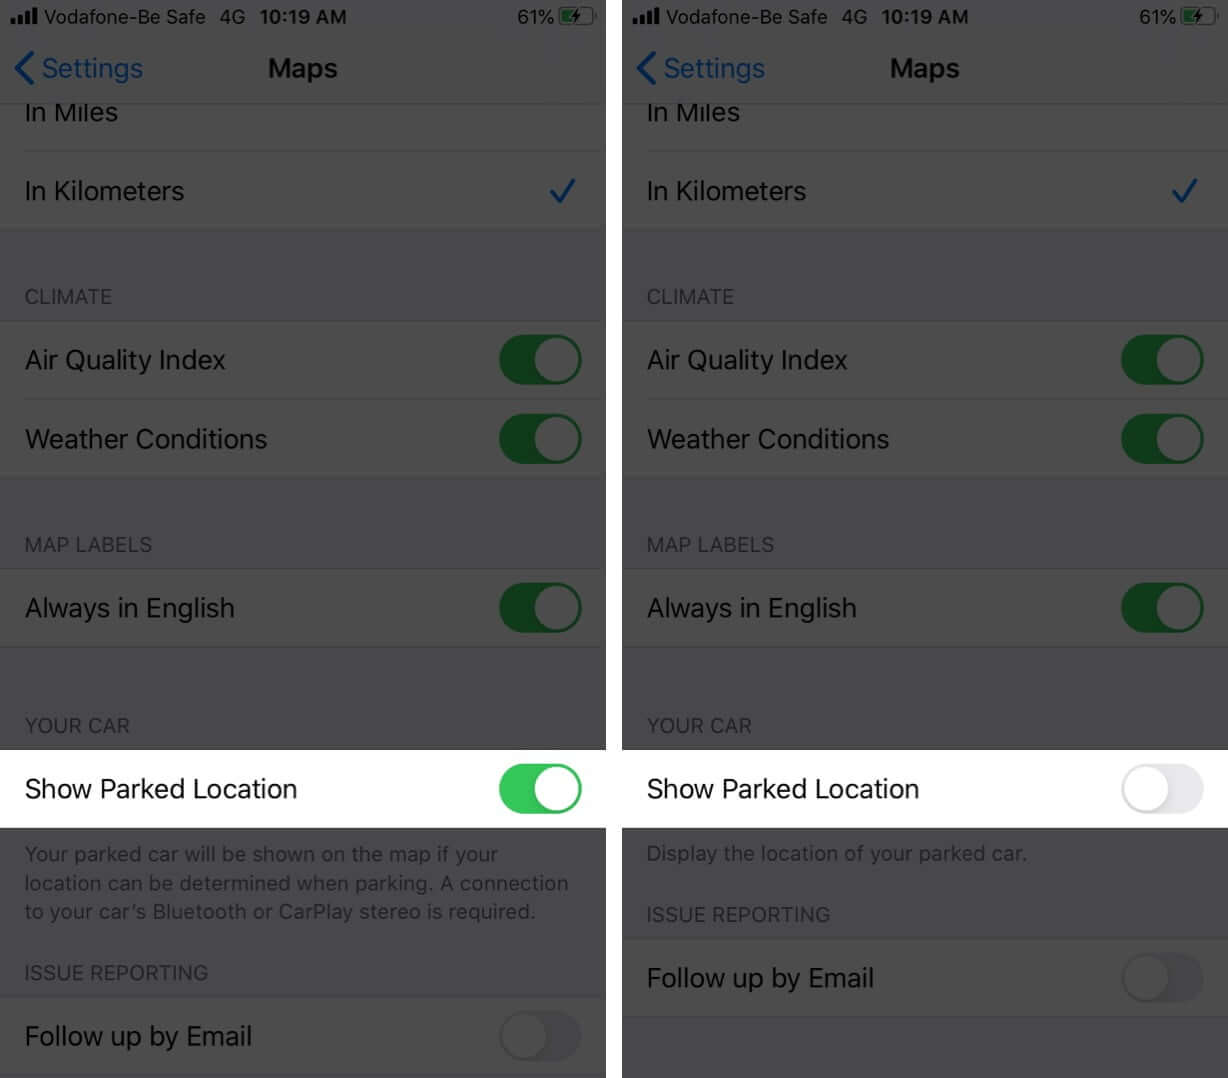 Turn OFF Parked Car Alerts from Maps on iPhone